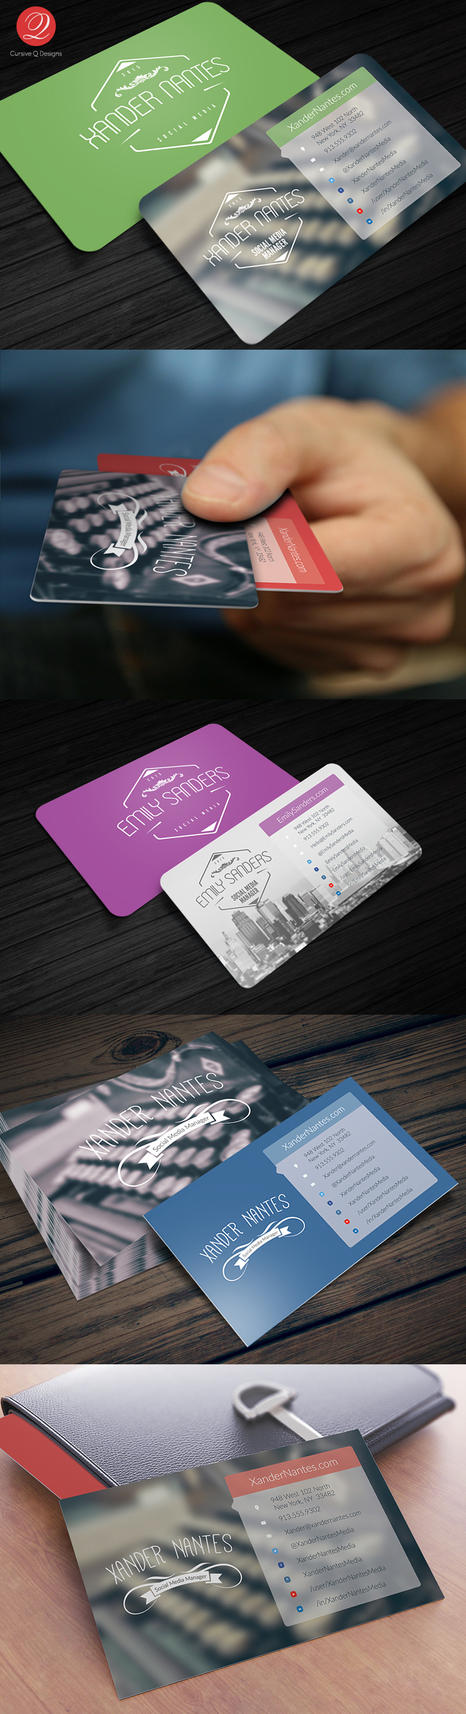 Social Media Business Card Photoshop Template by CursiveQ-Designs